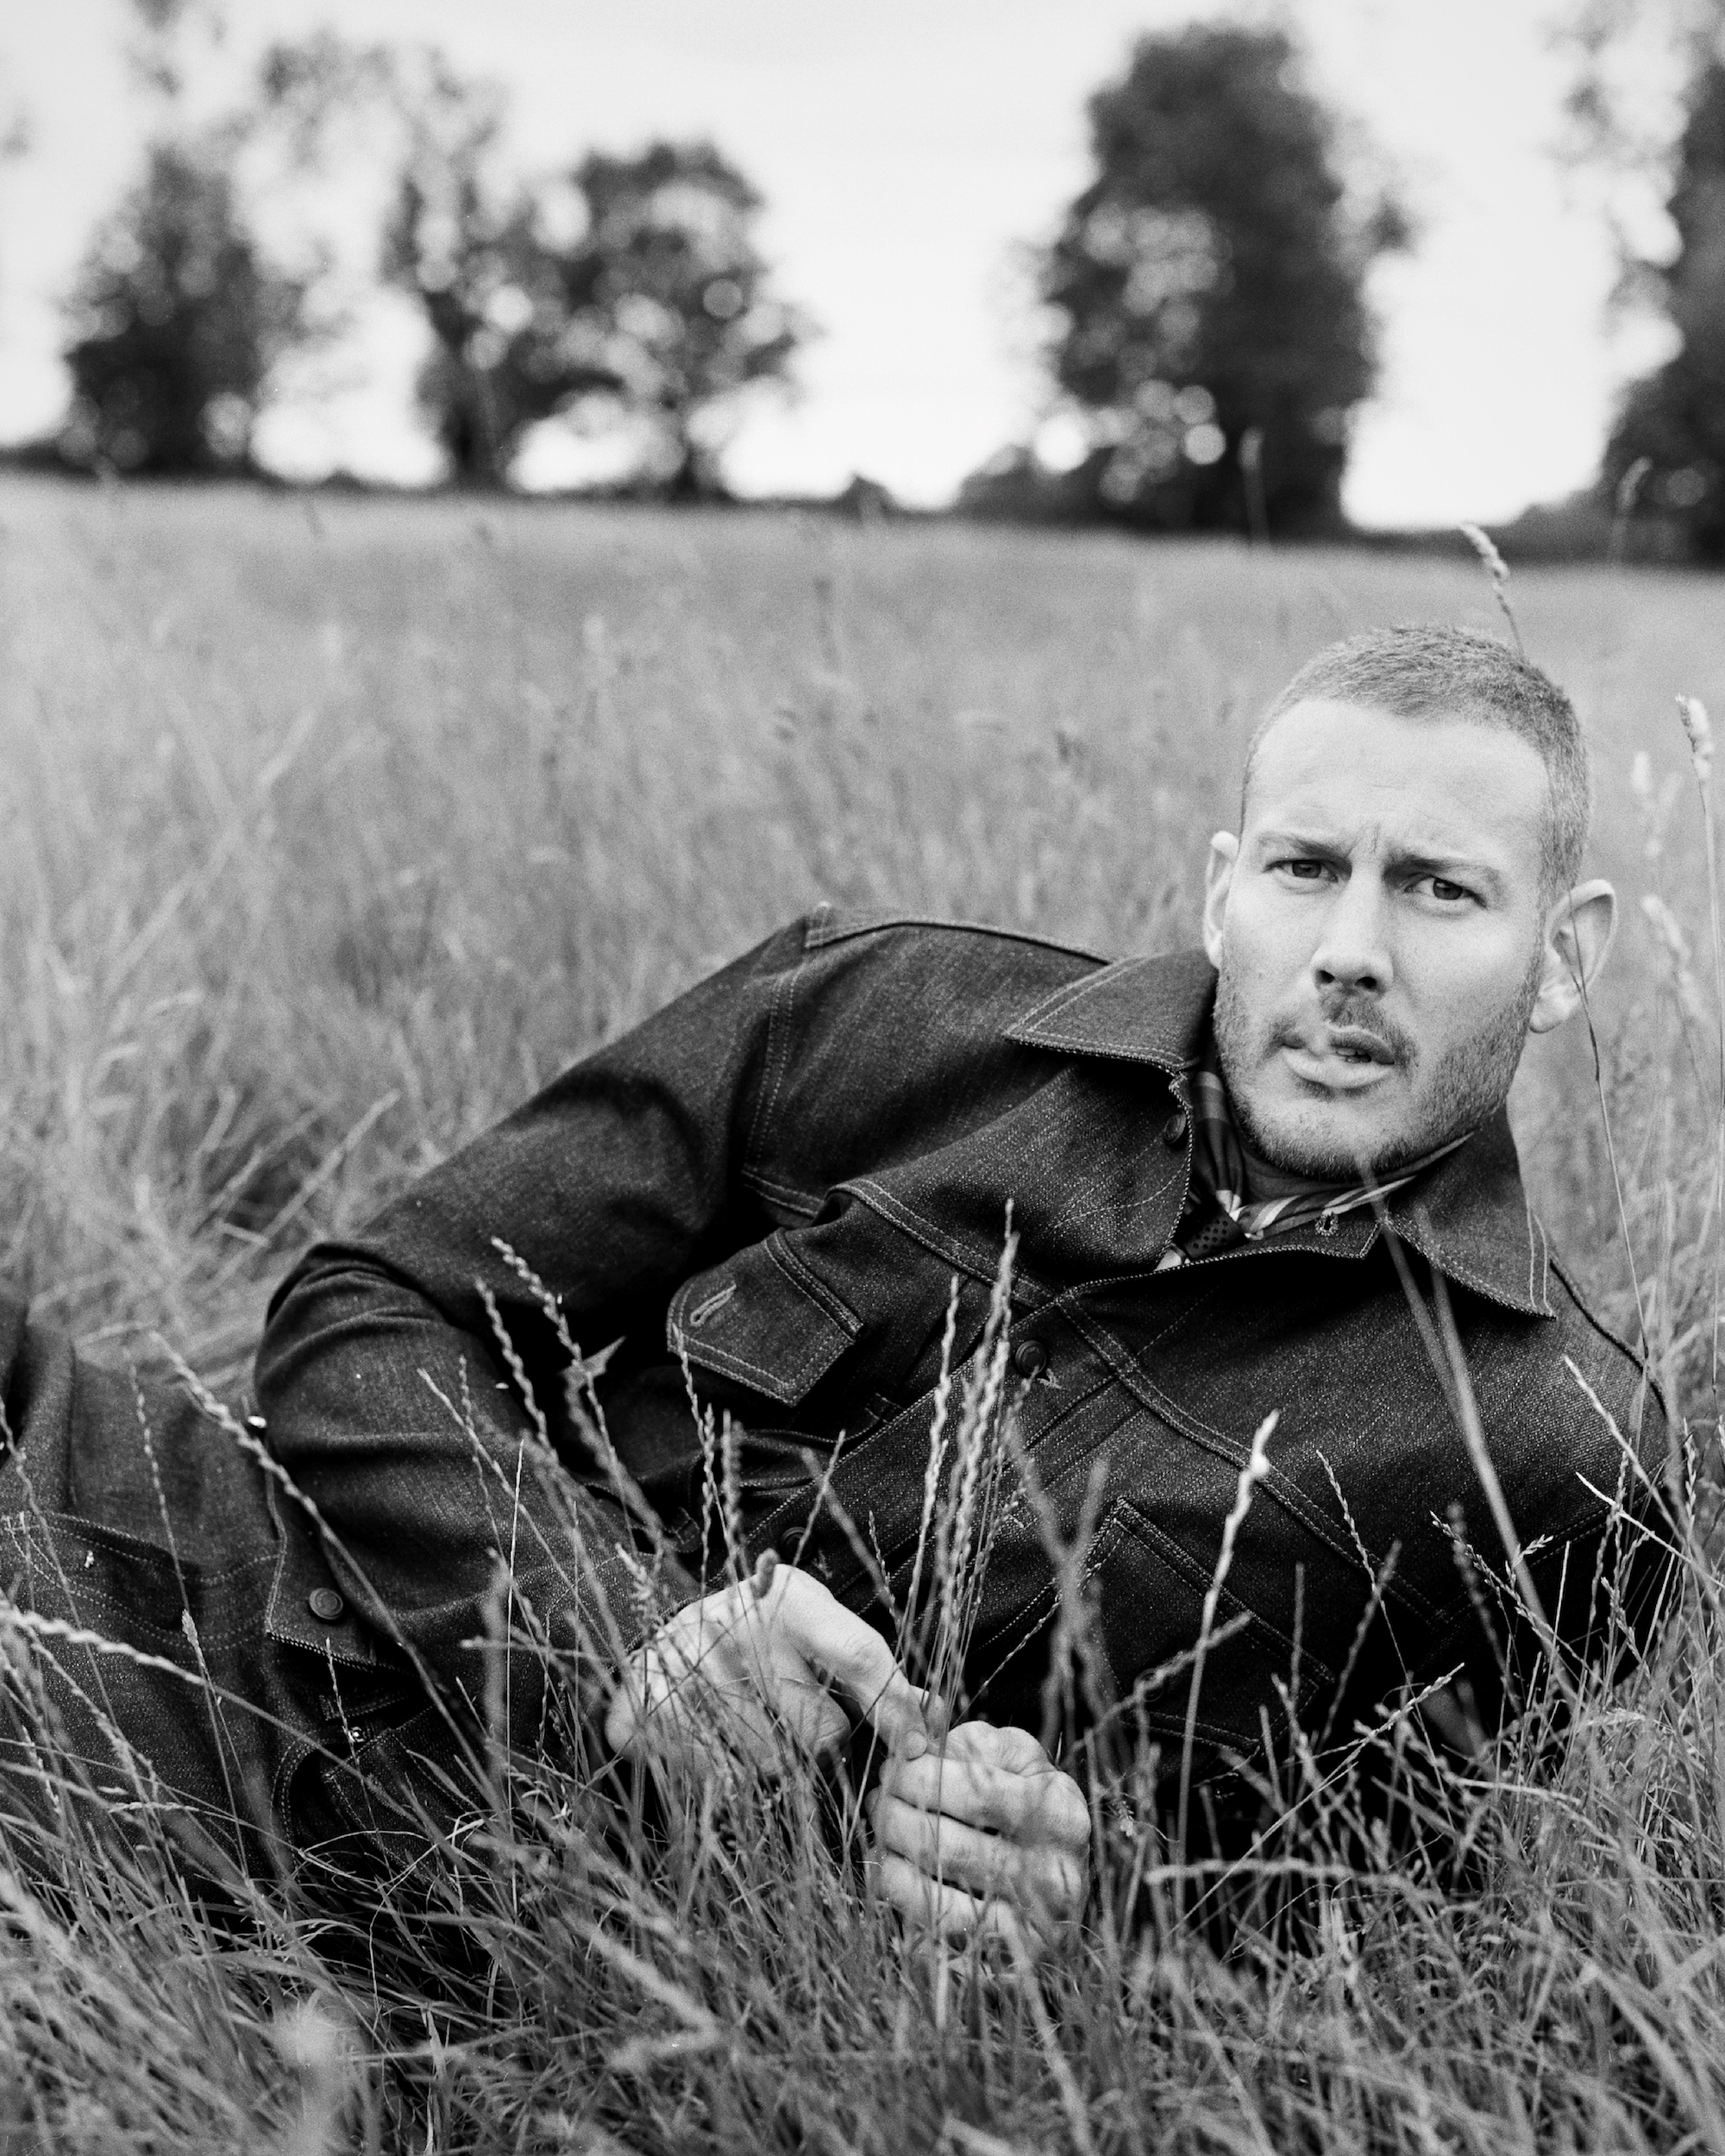 Tom Hopper for Man About Town black and white long grass